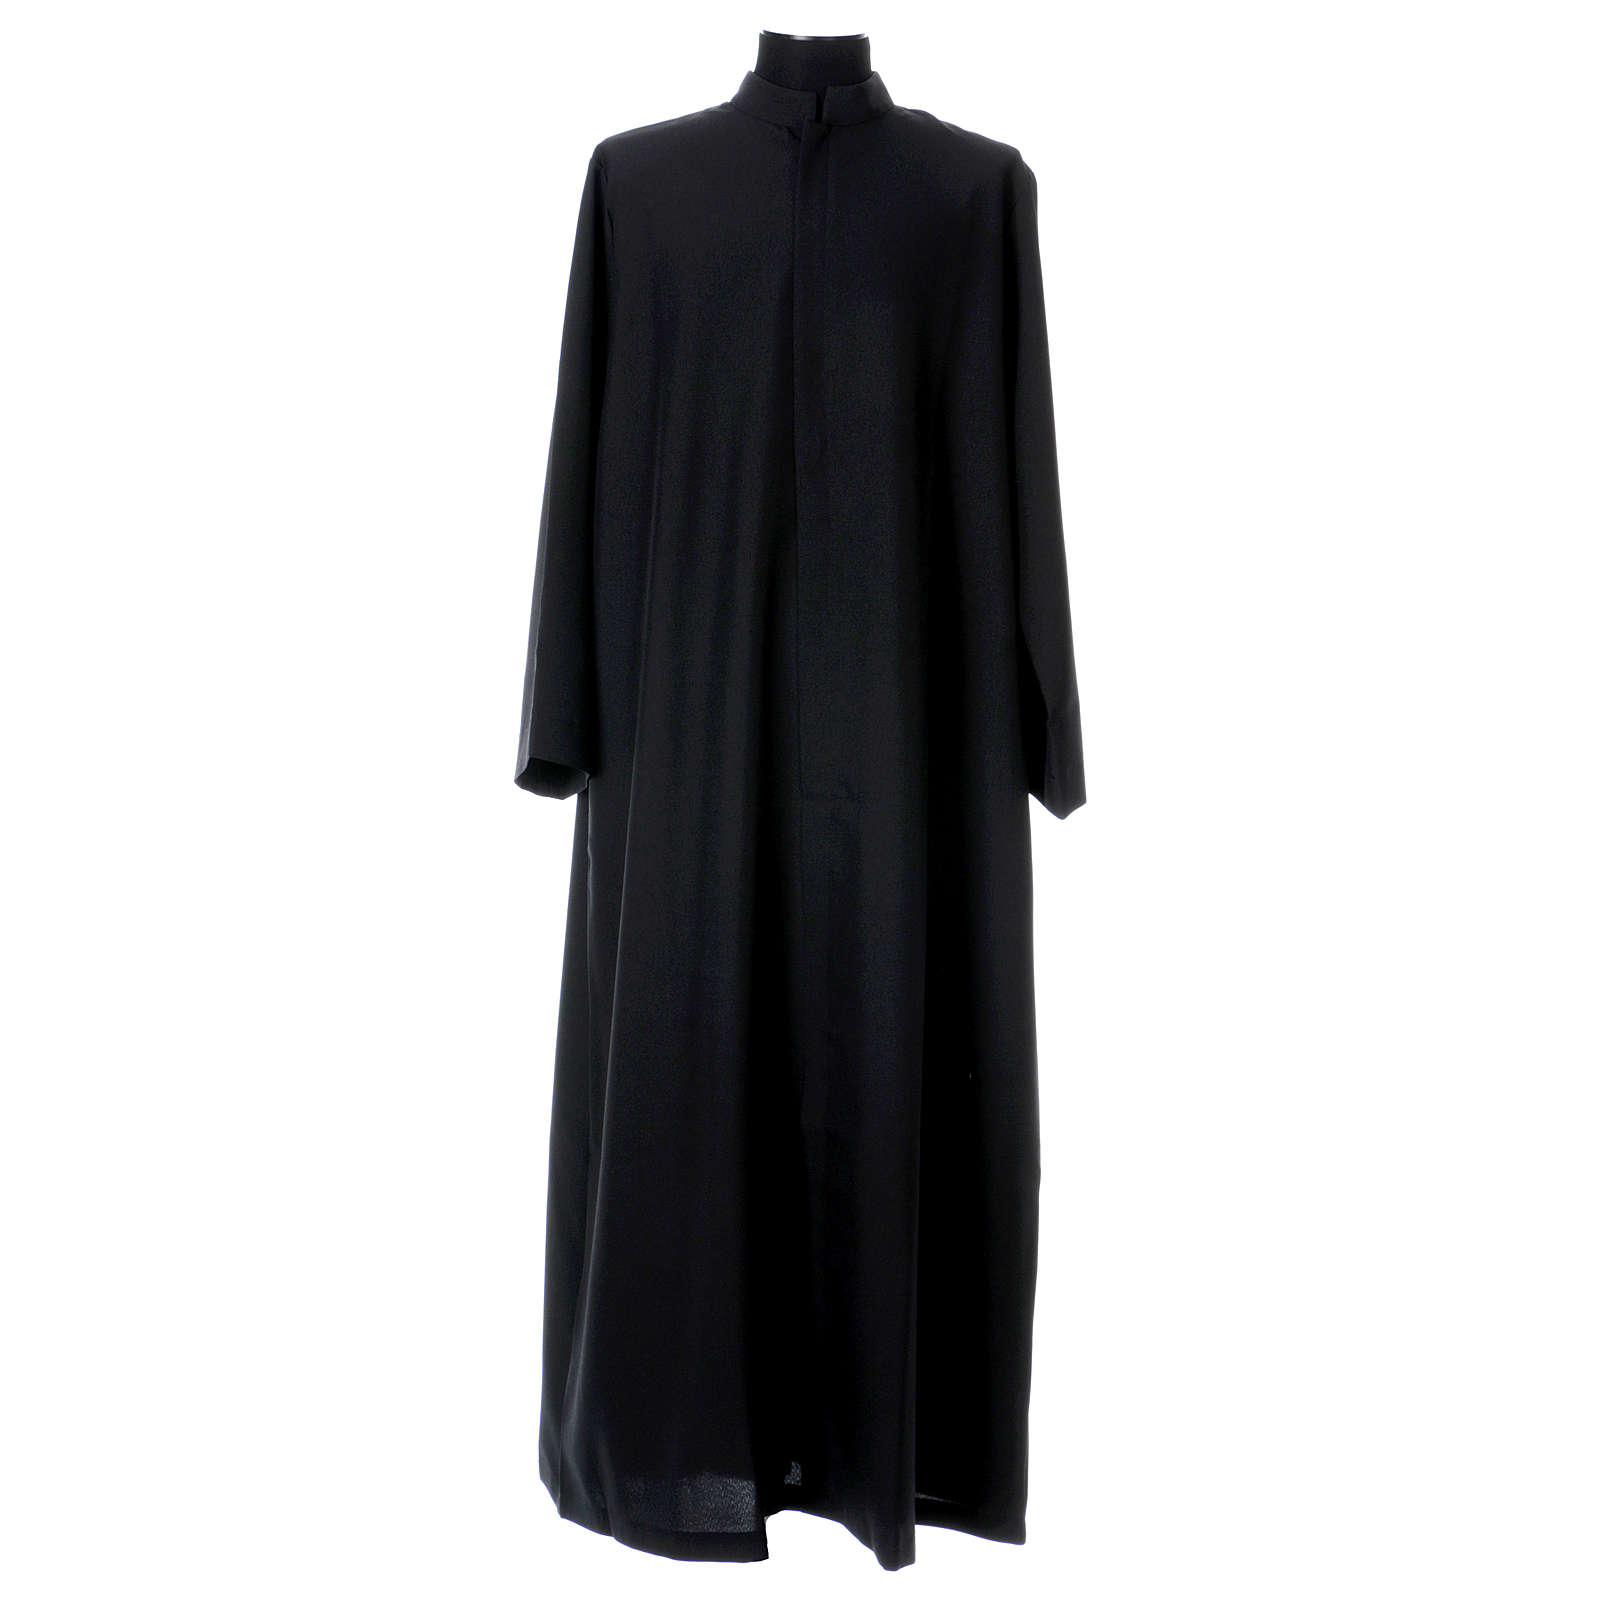 Cassock with concealed zipper 4